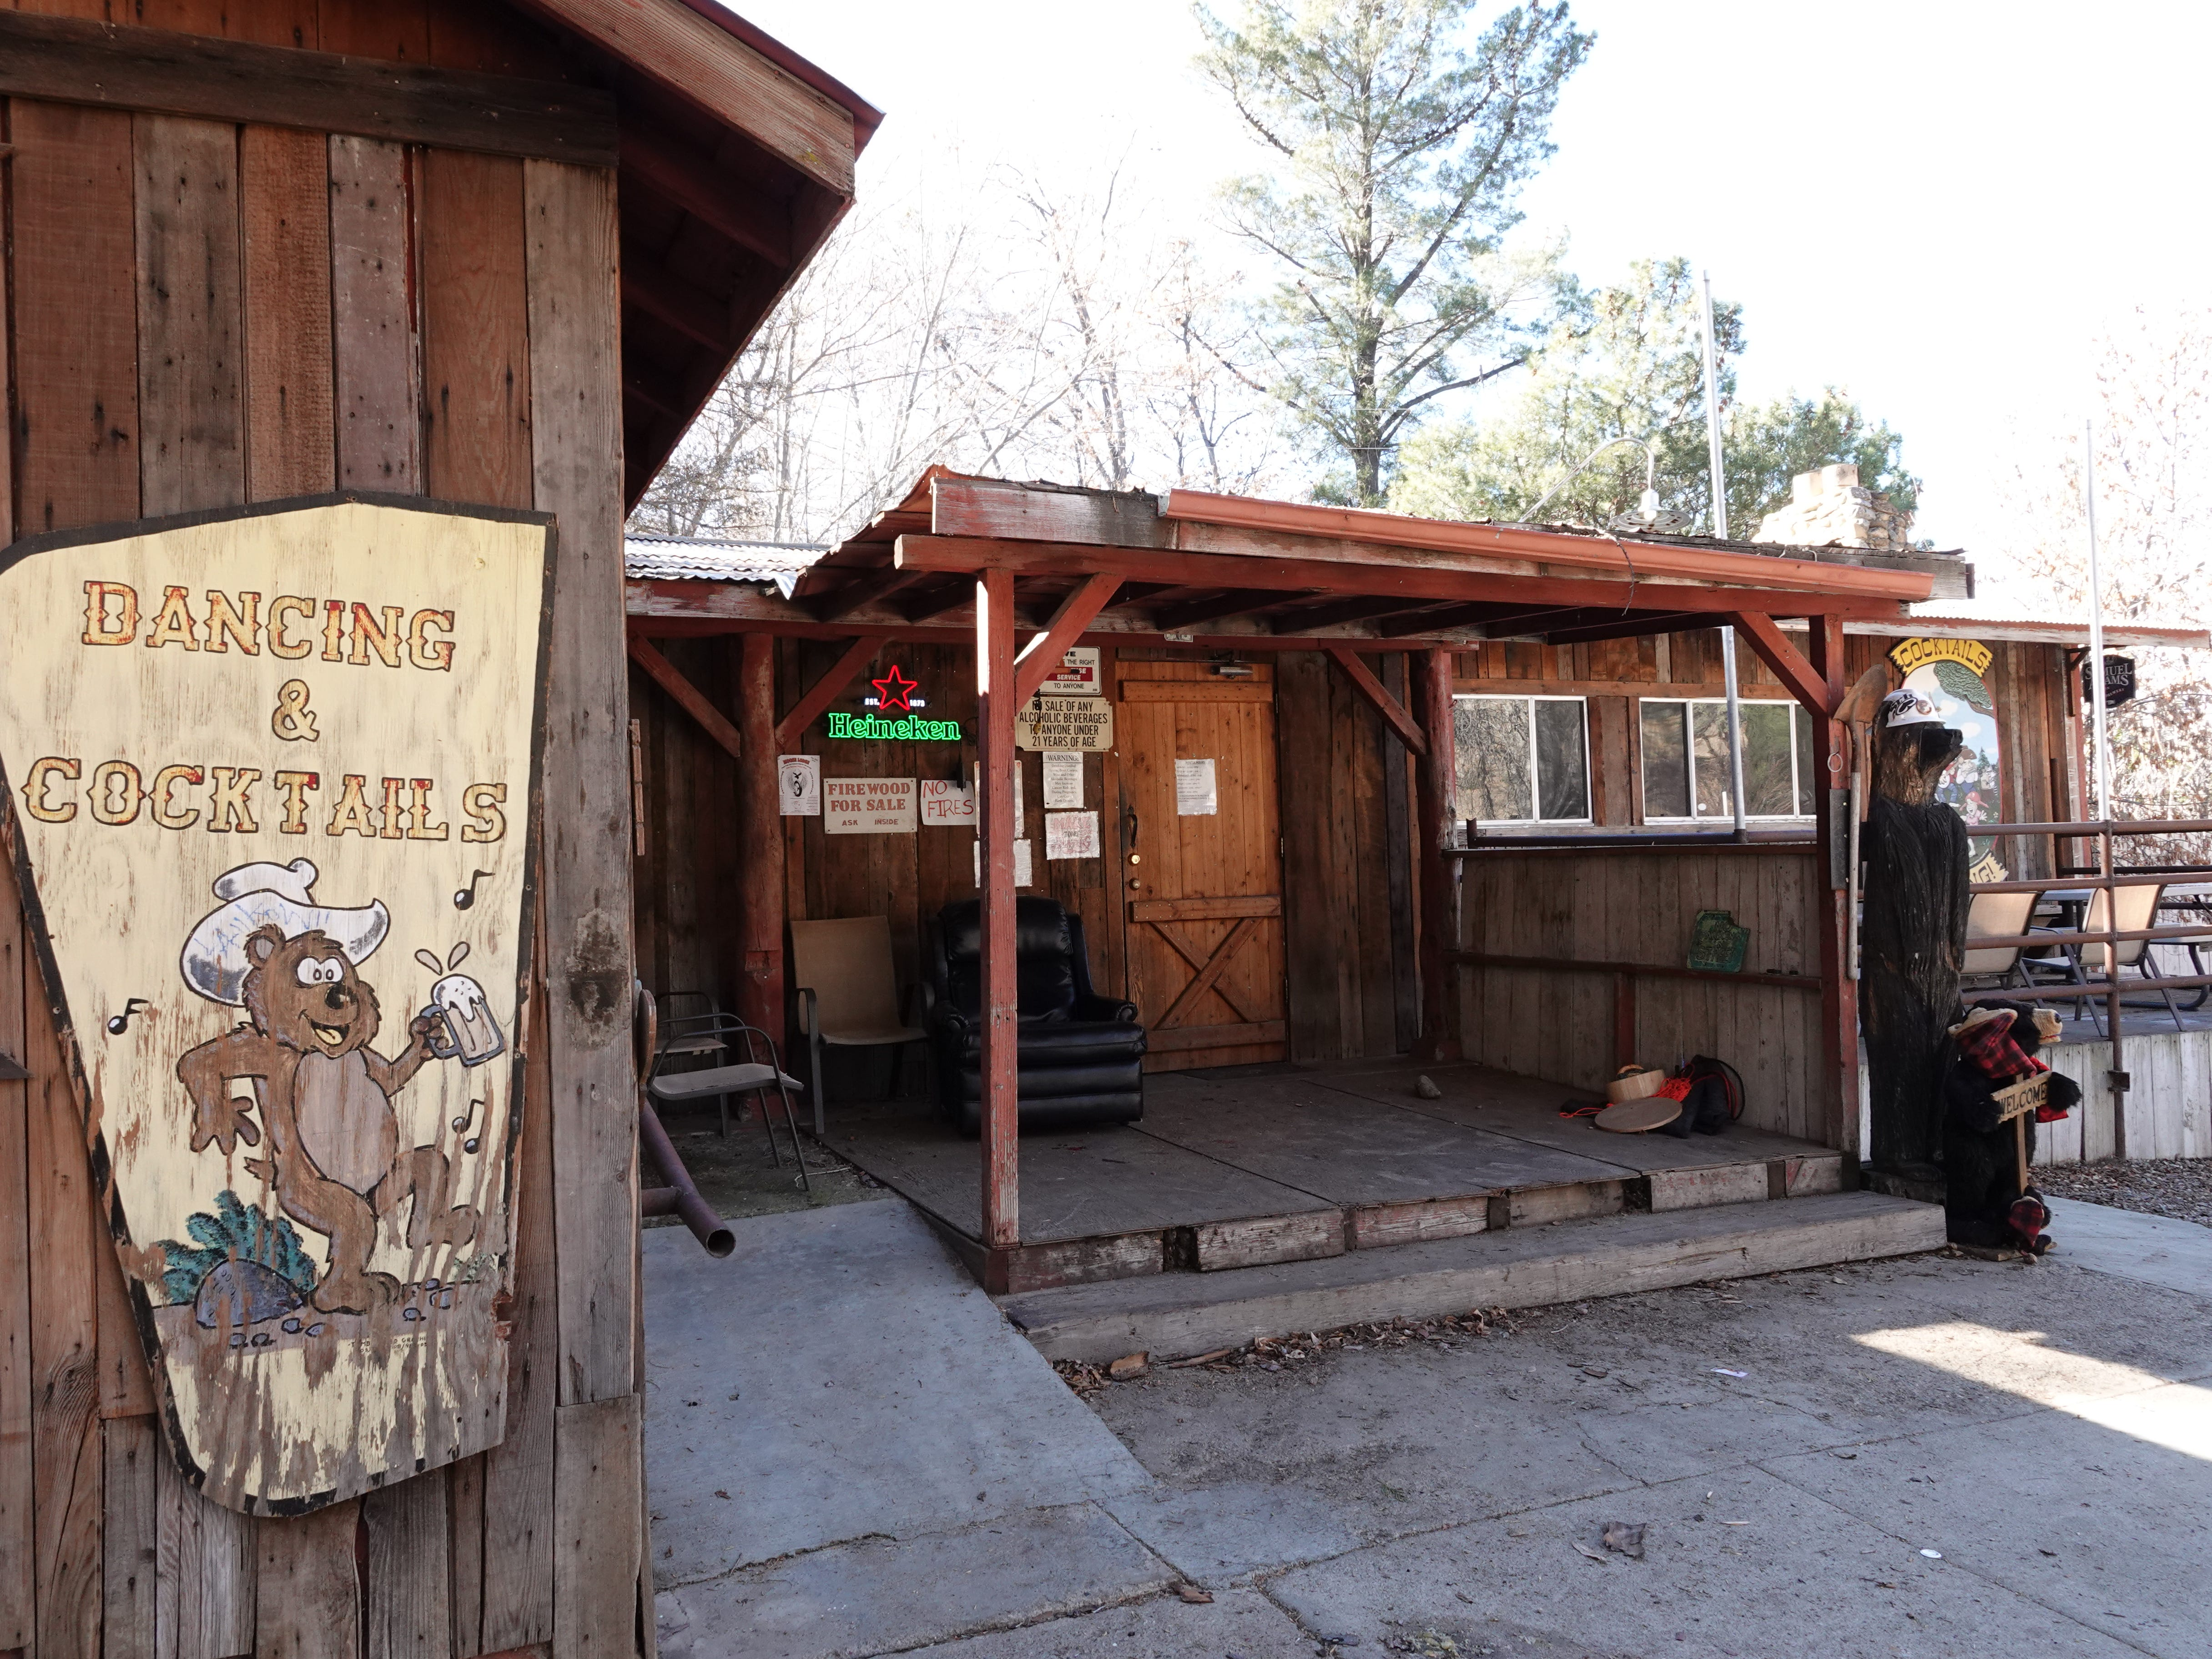 The Reyes Creek Bar and Grill in the Lockwood Valley serves a nearby campground and the Camp Scheideck community. The locale is within the 610-square-mile area served by a remote Ventura County sheriff's substation.